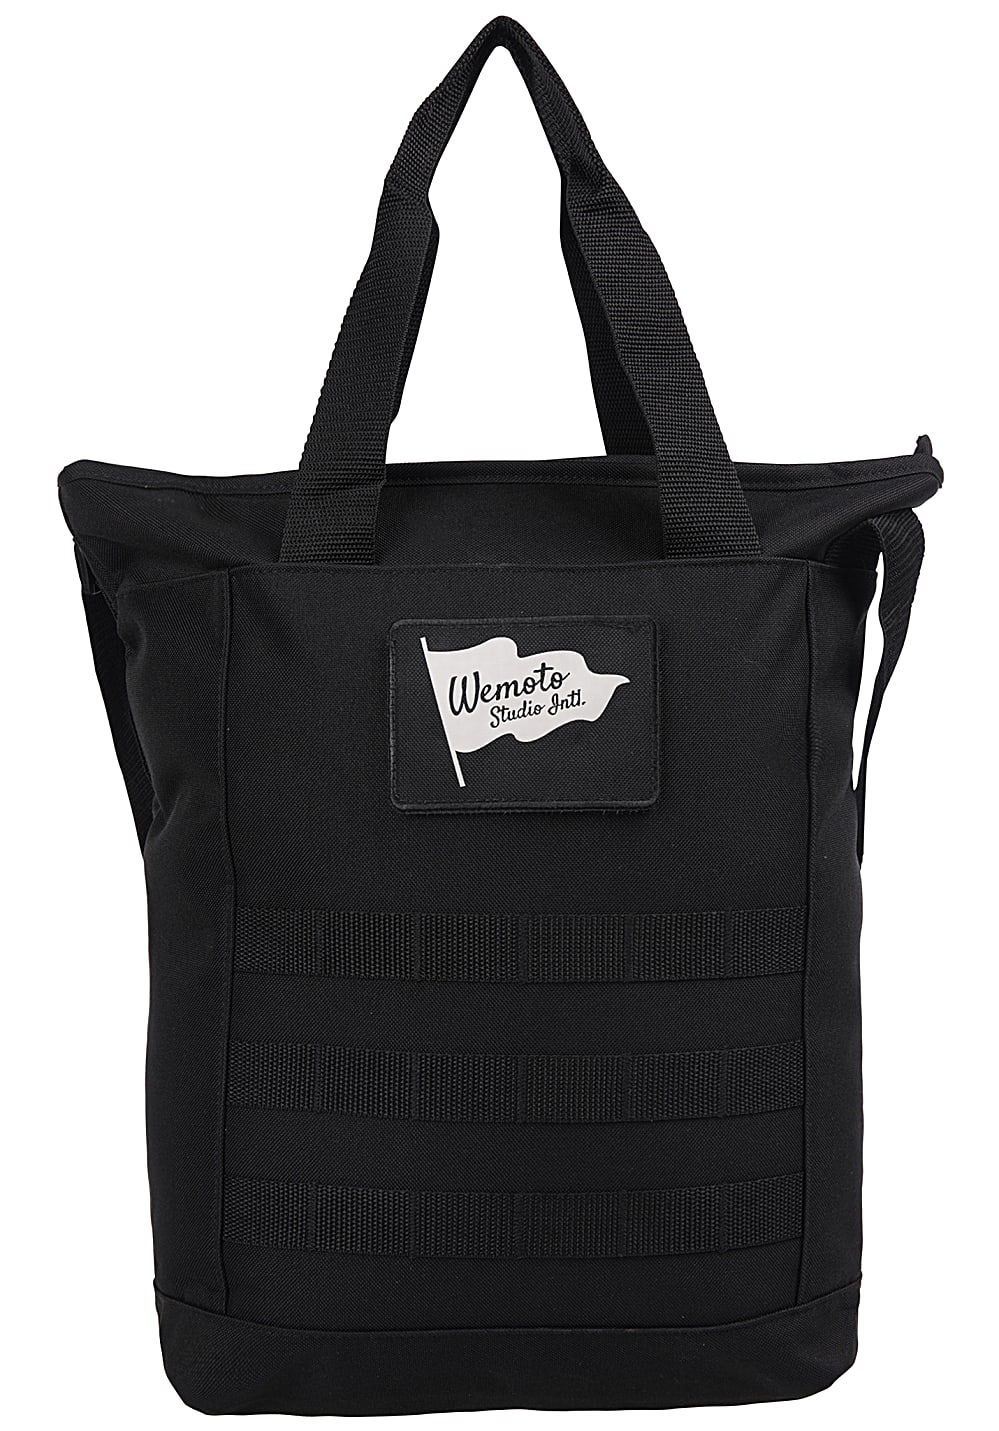 Wemoto Flag Studio Bag Tasche Schwarz Planet Sports